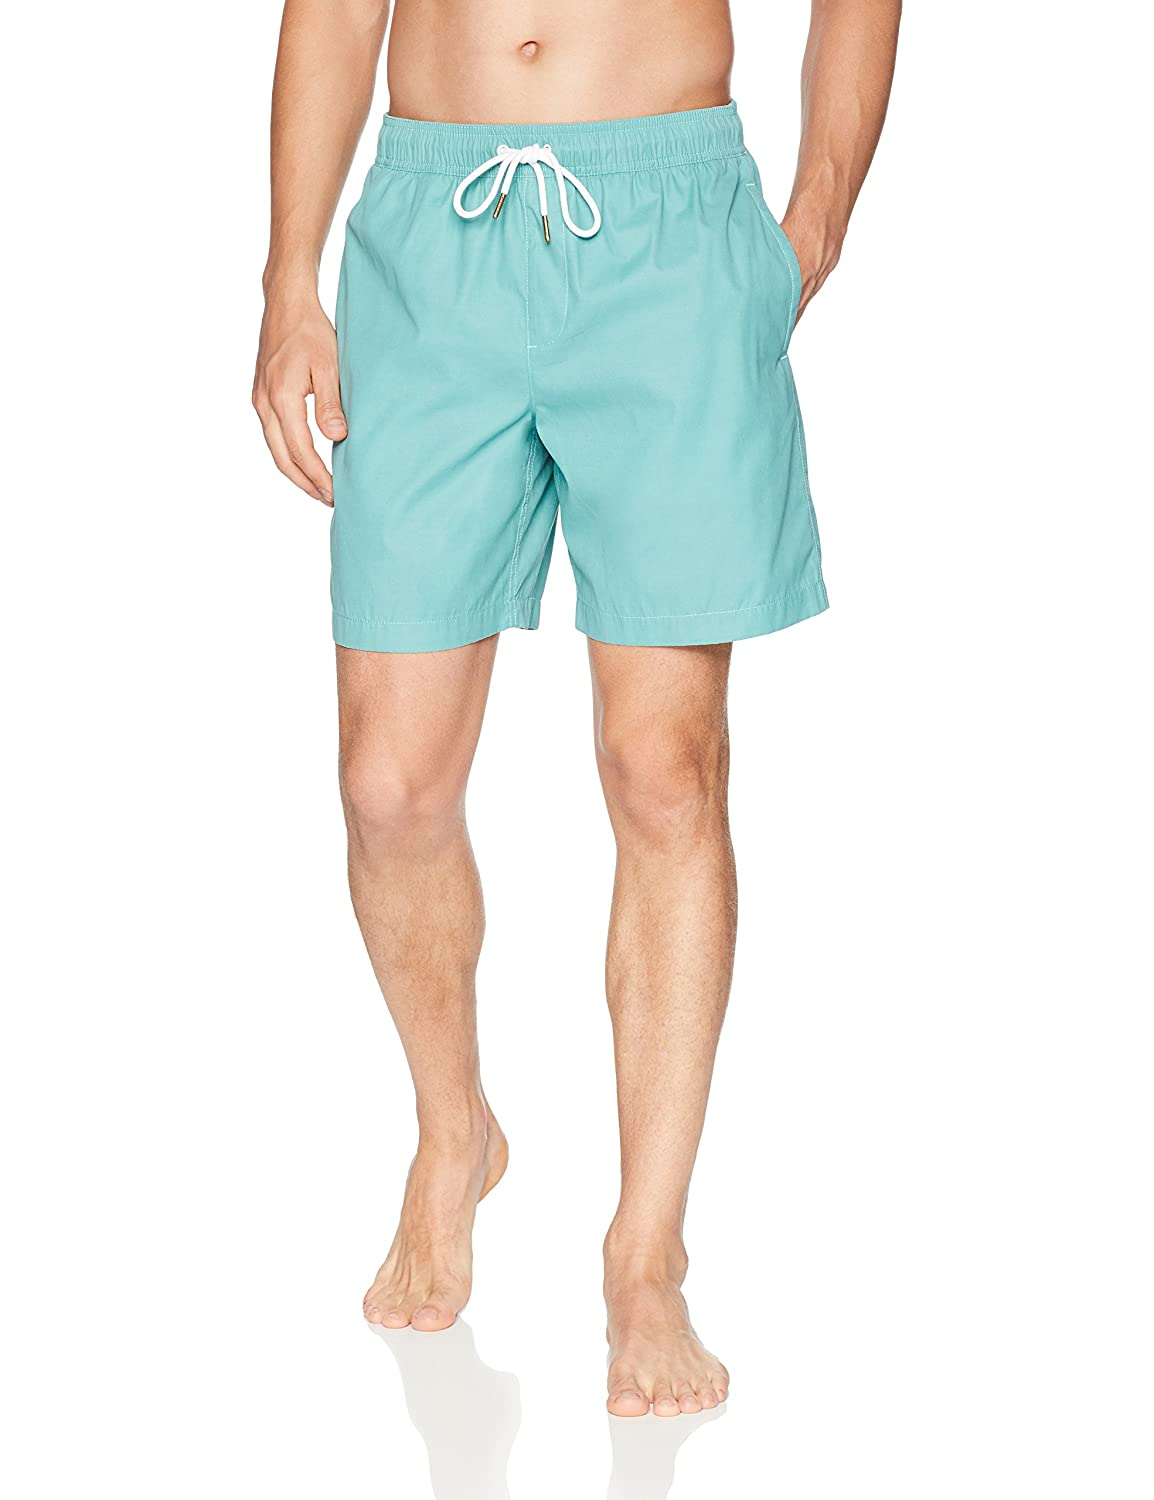 8bde131150 Top 10 wholesale Polo Swim Trunks - Chinabrands.com